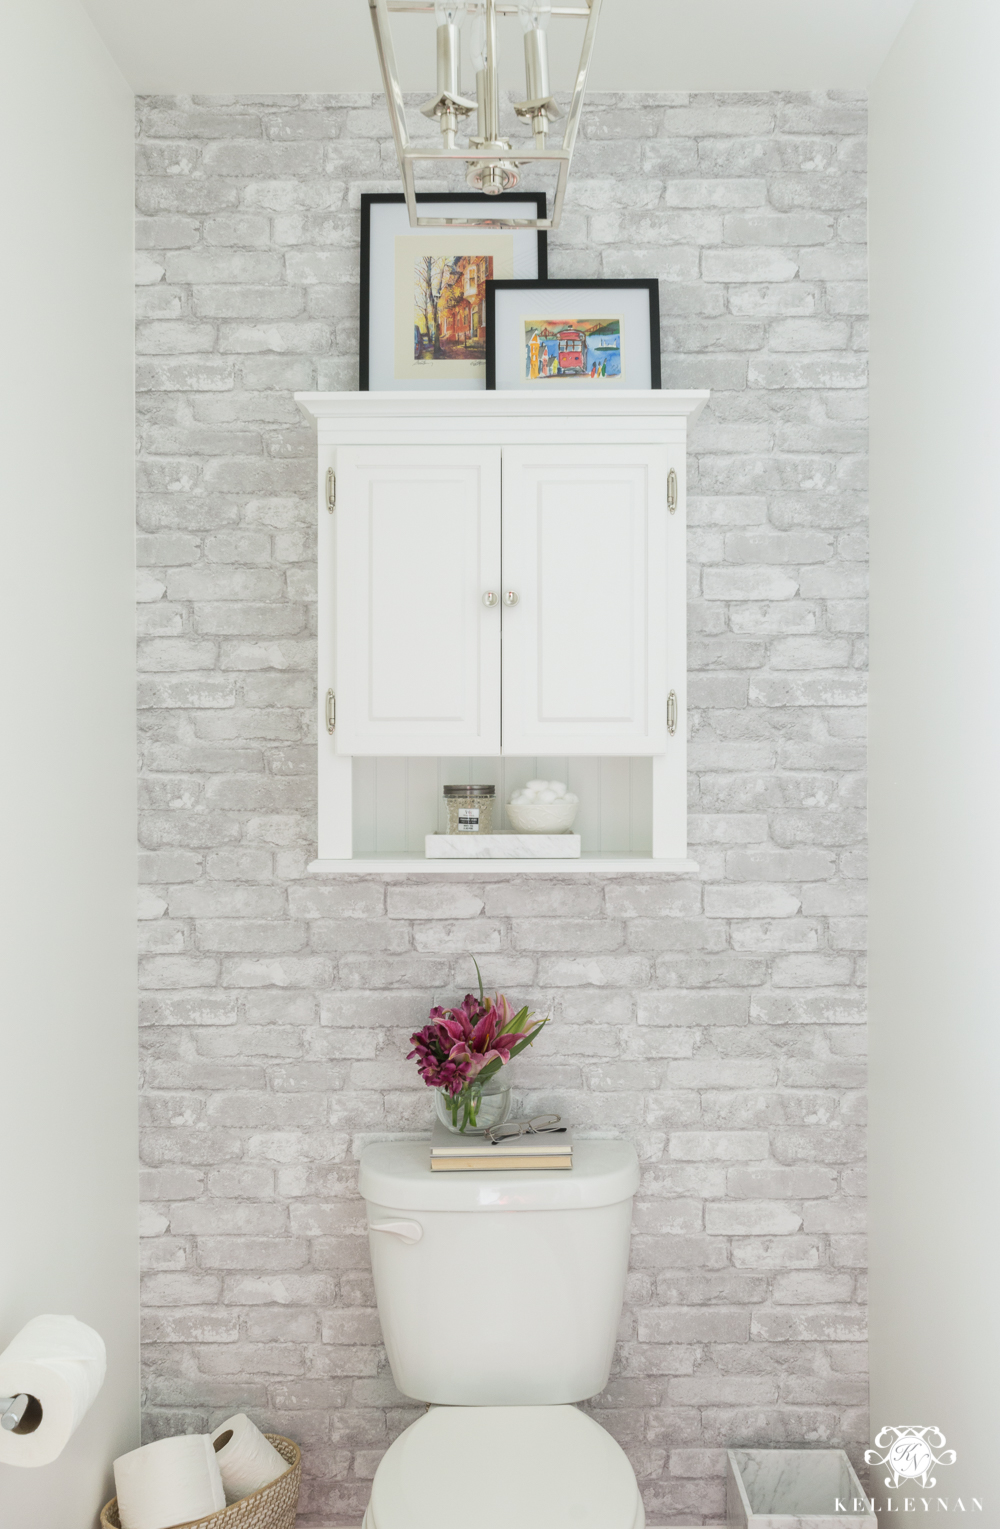 Toilet Room Makeover With Cabinet For Storage Above Toilet